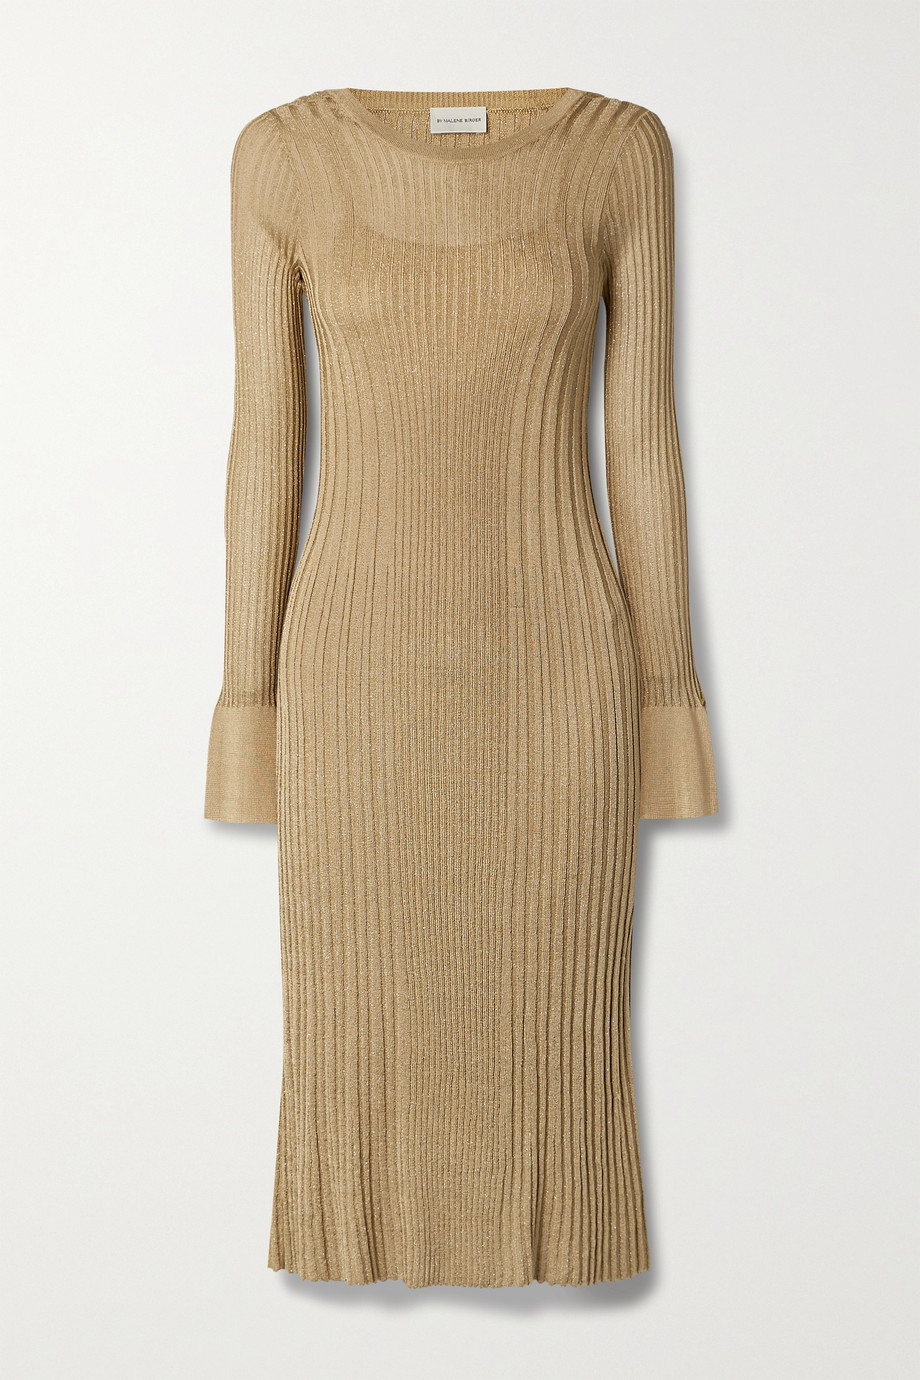 BY MALENE BIRGER Ophelias metallic ribbed-knit midi dress